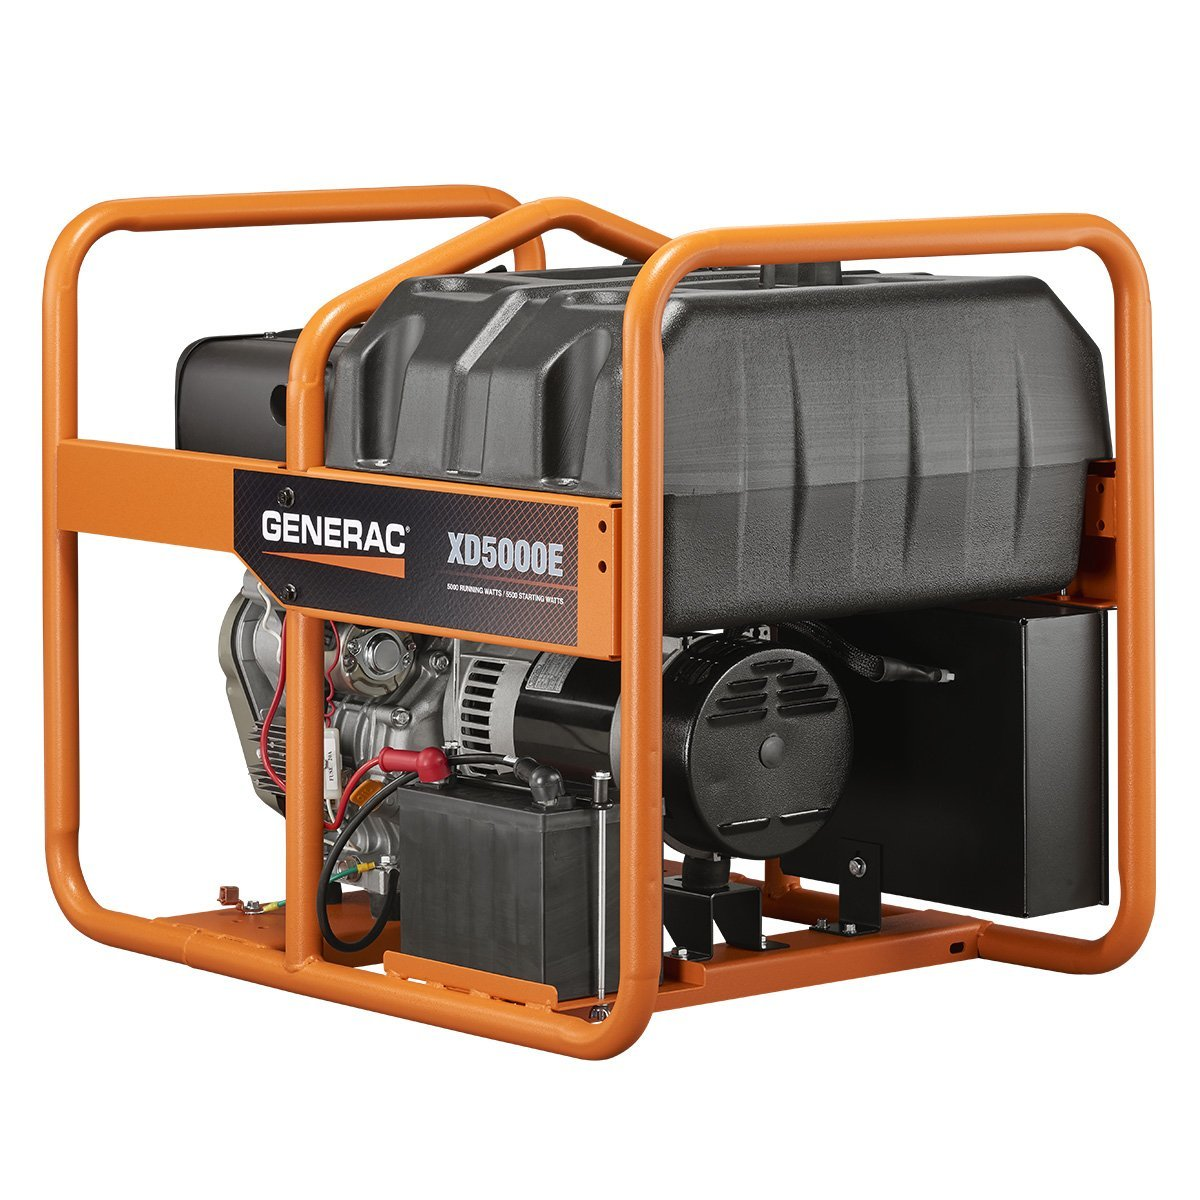 portable diesel generators. Generac 6864 XD5000E 5,000 Watt Electric Start Diesel Portable Generator Generators